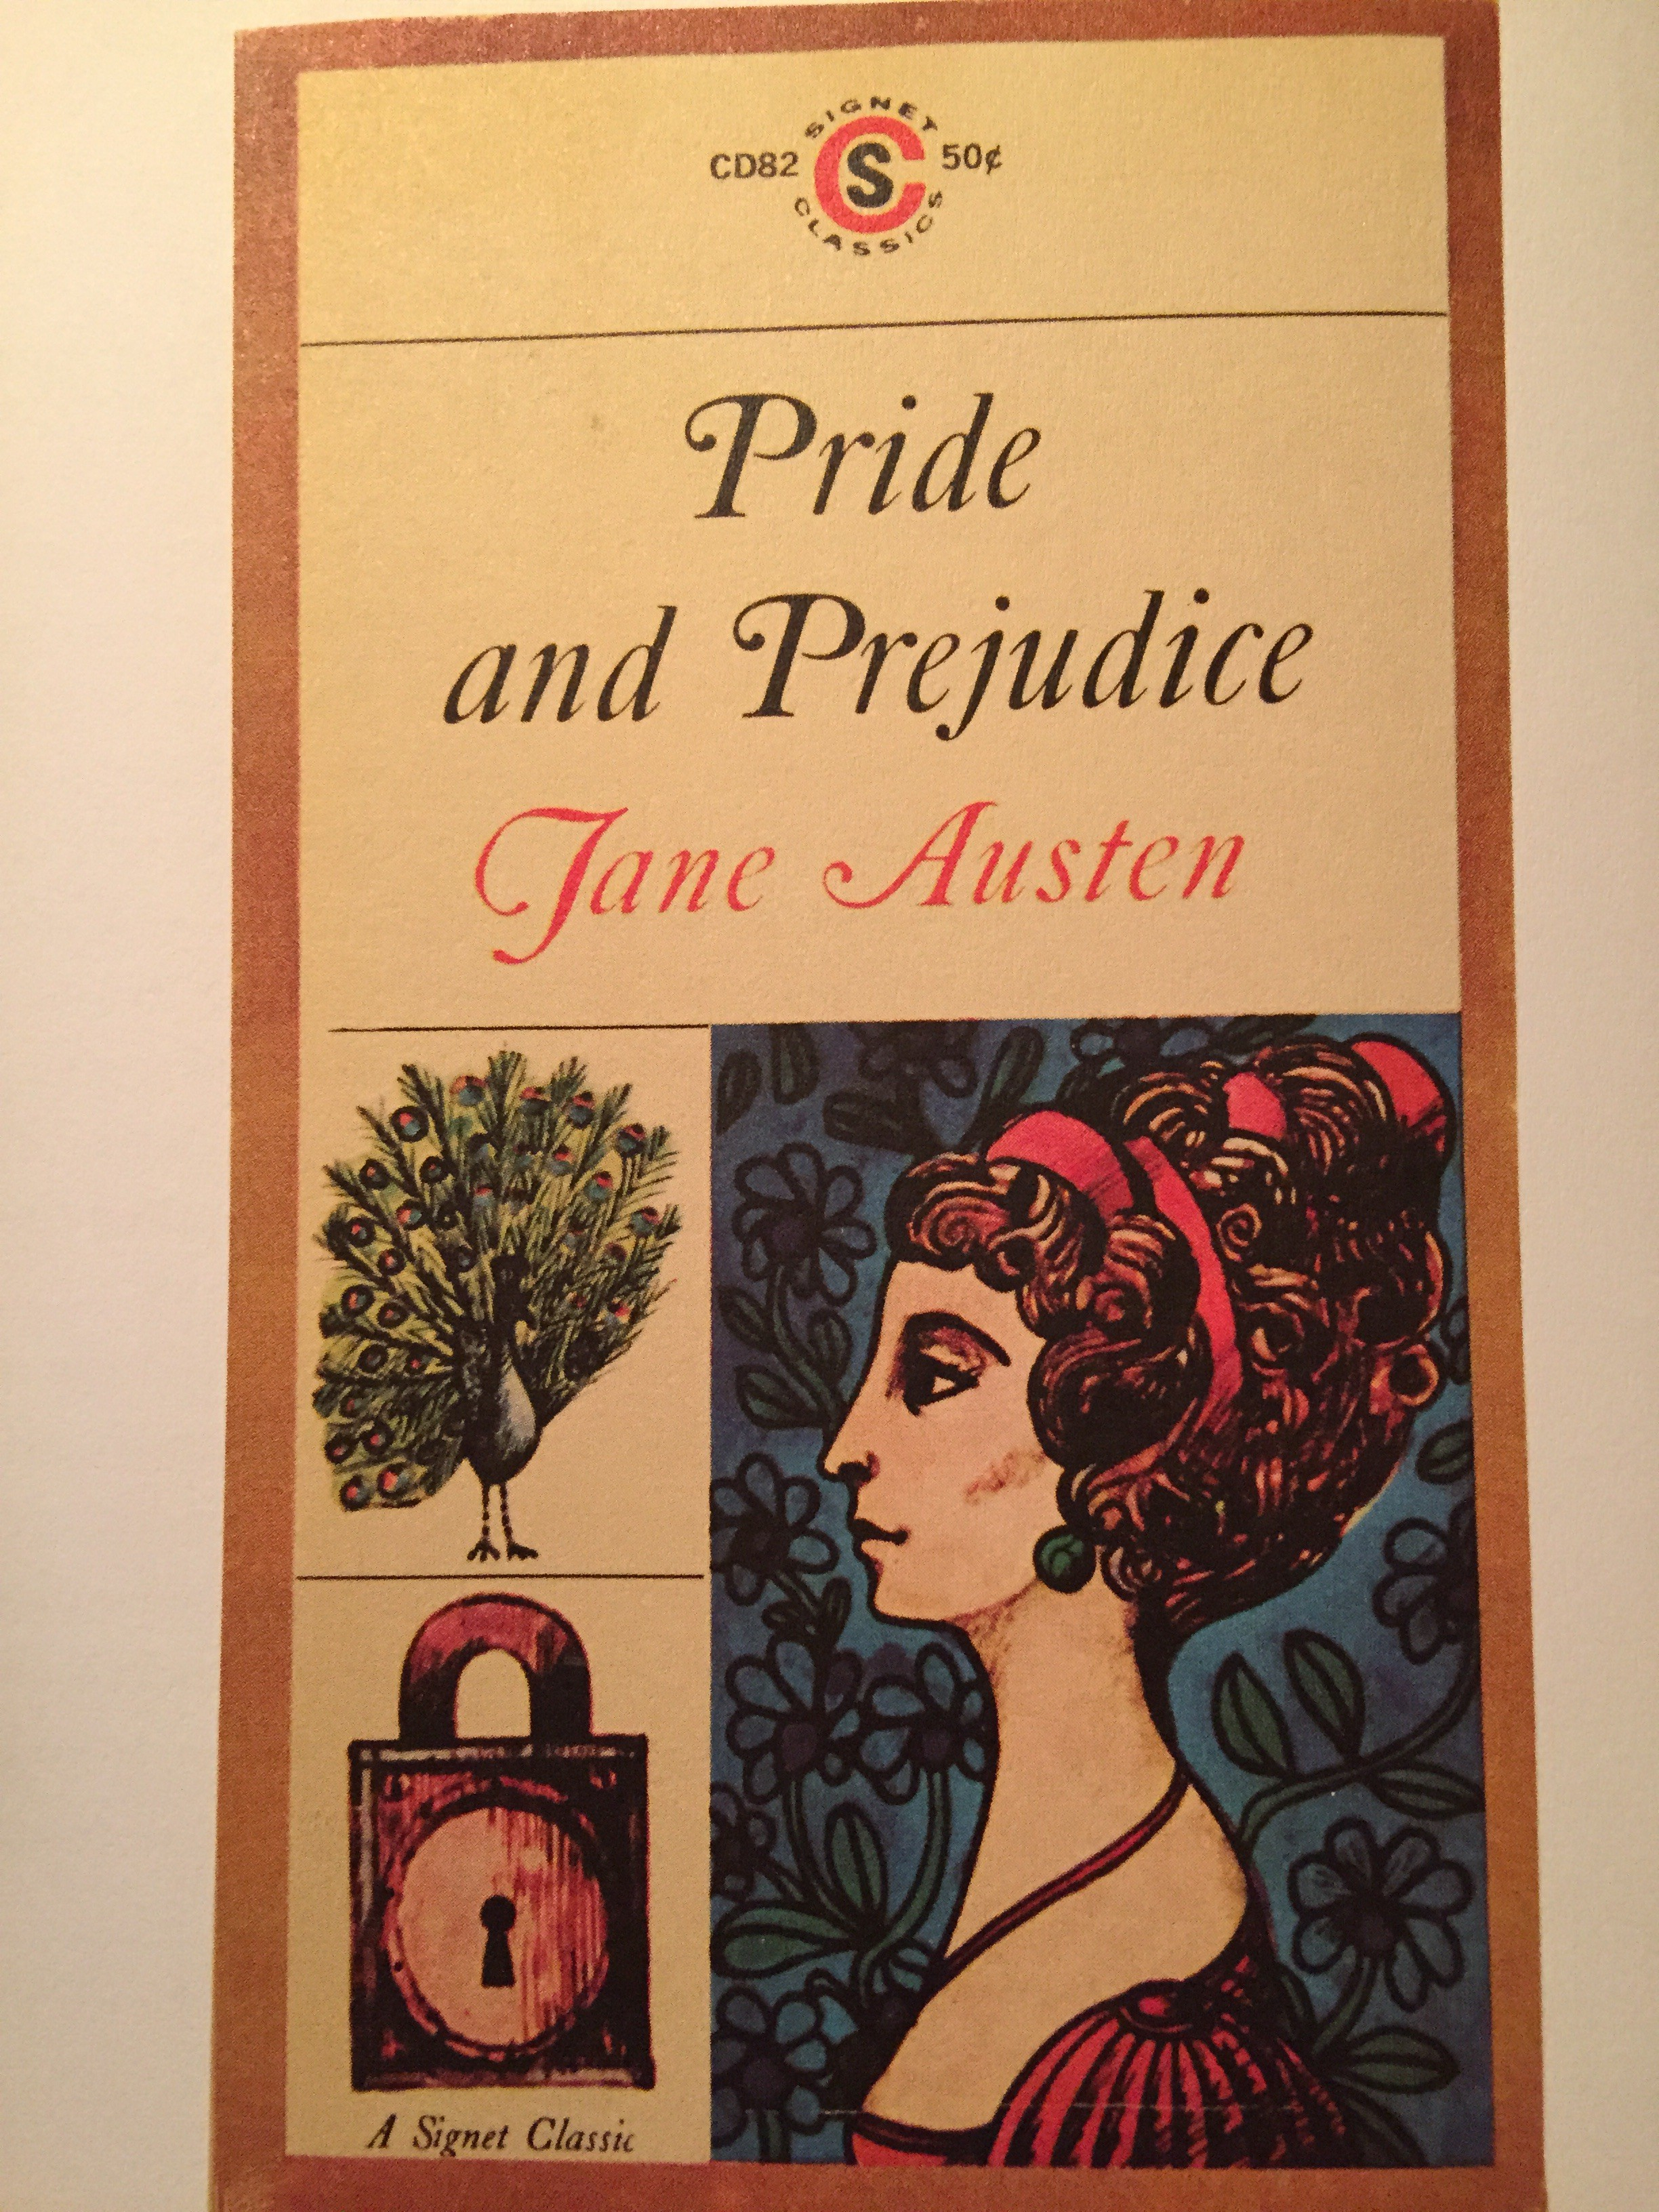 a literary analysis of pride and prejudice by jane austen Pride and prejudice: literary context & analysis chapter exam instructions choose your answers to the questions and click 'next' to see the next set of questions.